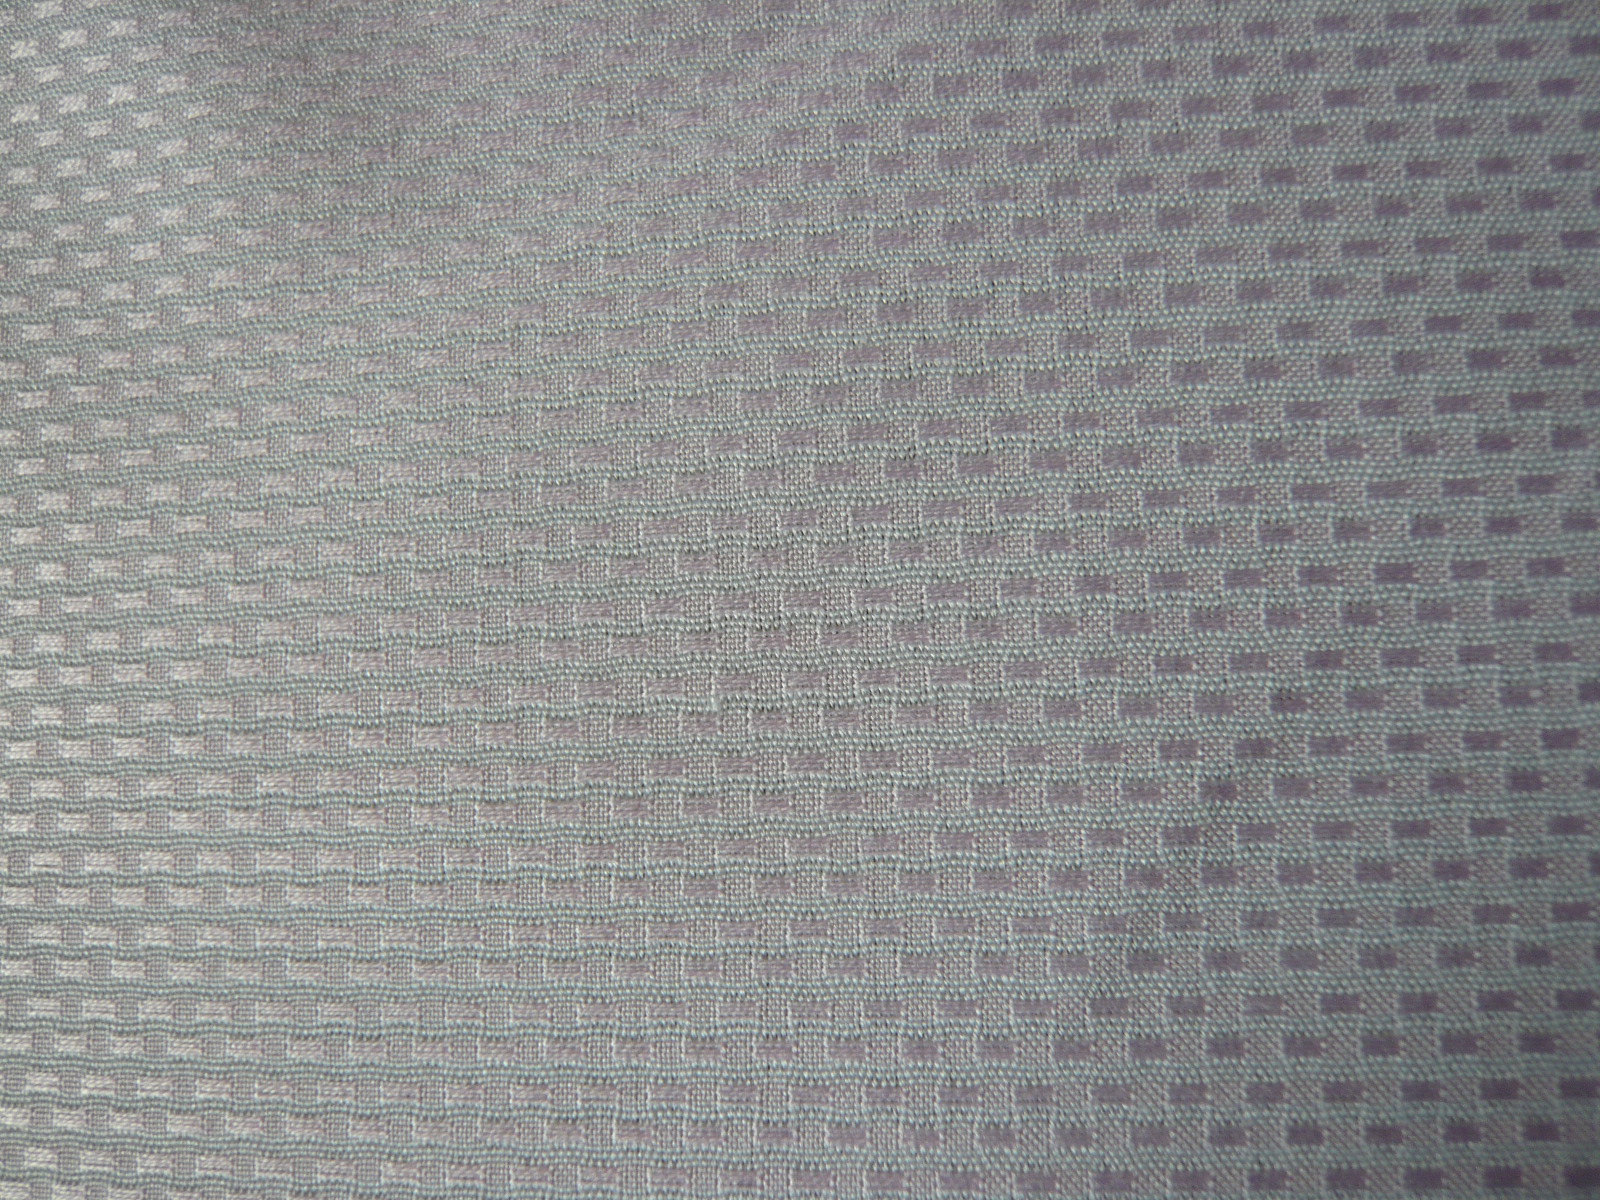 shirit fabric